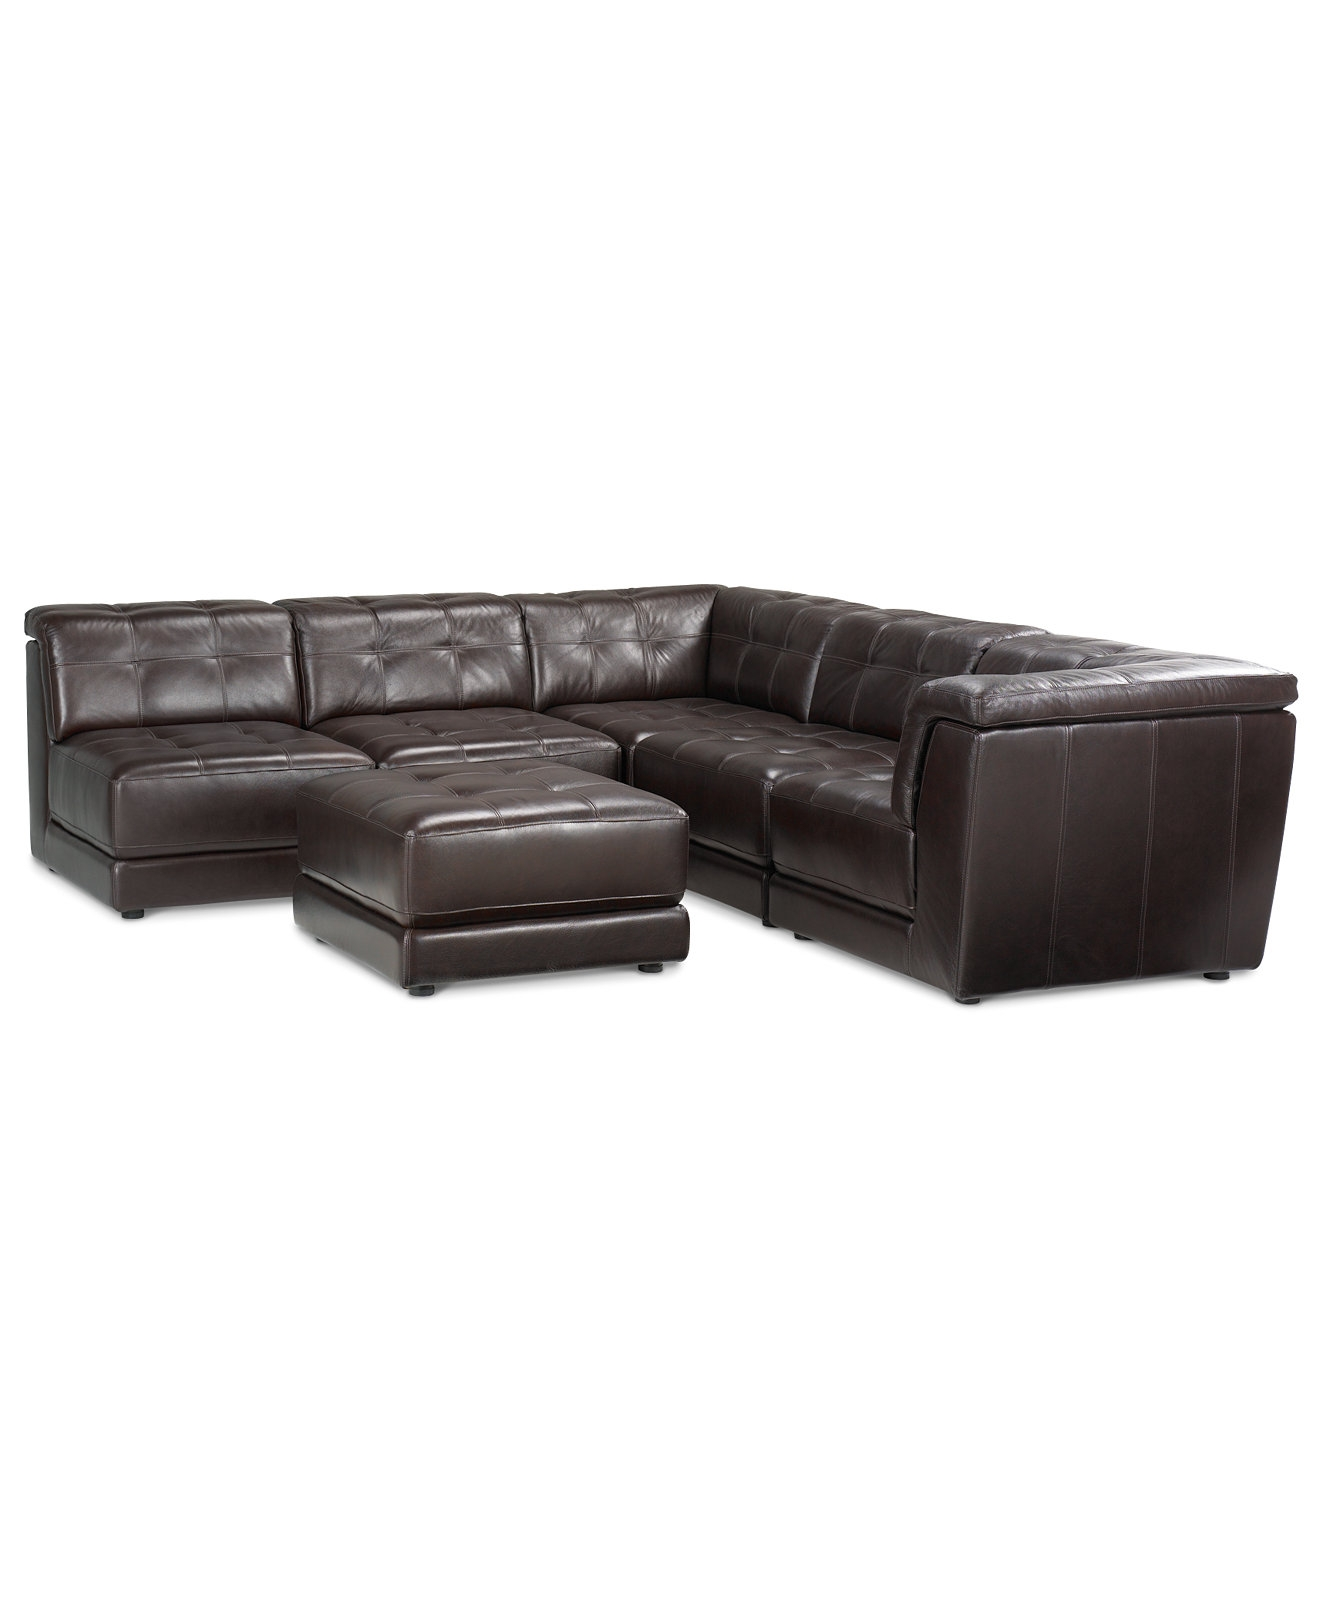 Stacey Leather 6 Piece Modular Sectional Sofa 3 Armless Chairs 2 Throughout 6 Piece Modular Sectional Sofa (Image 15 of 15)